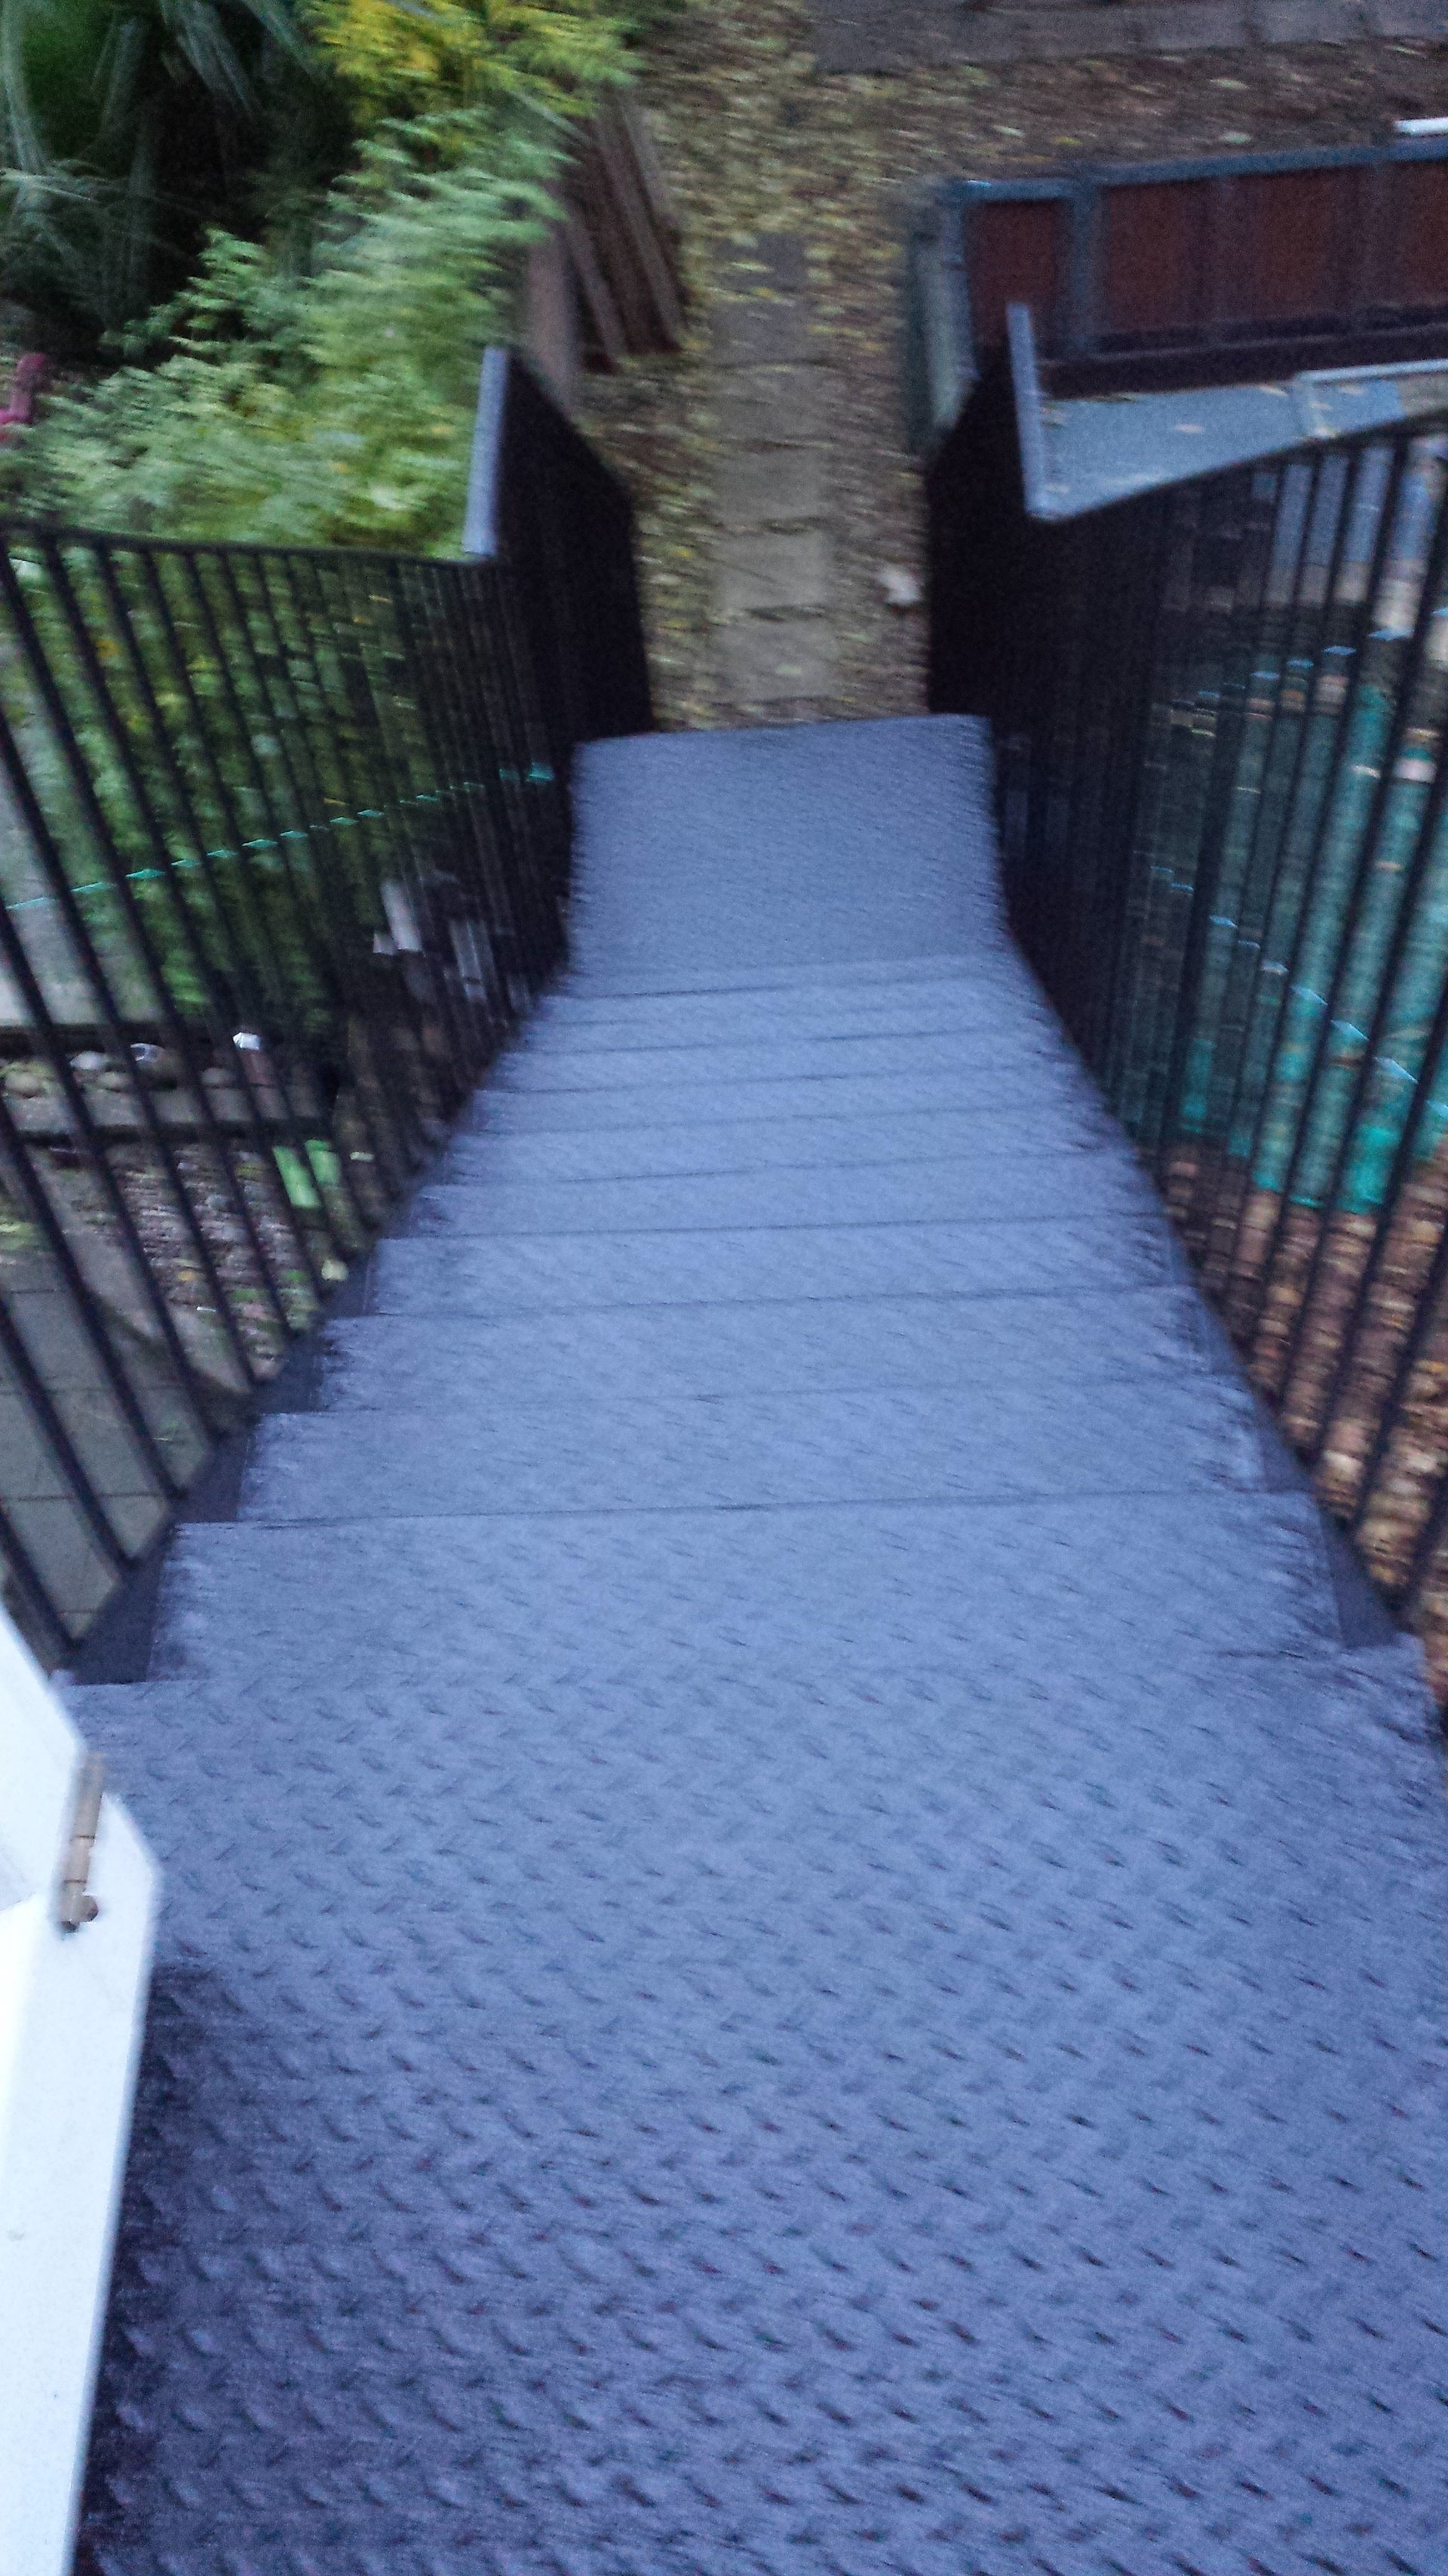 closer view of metal stairs